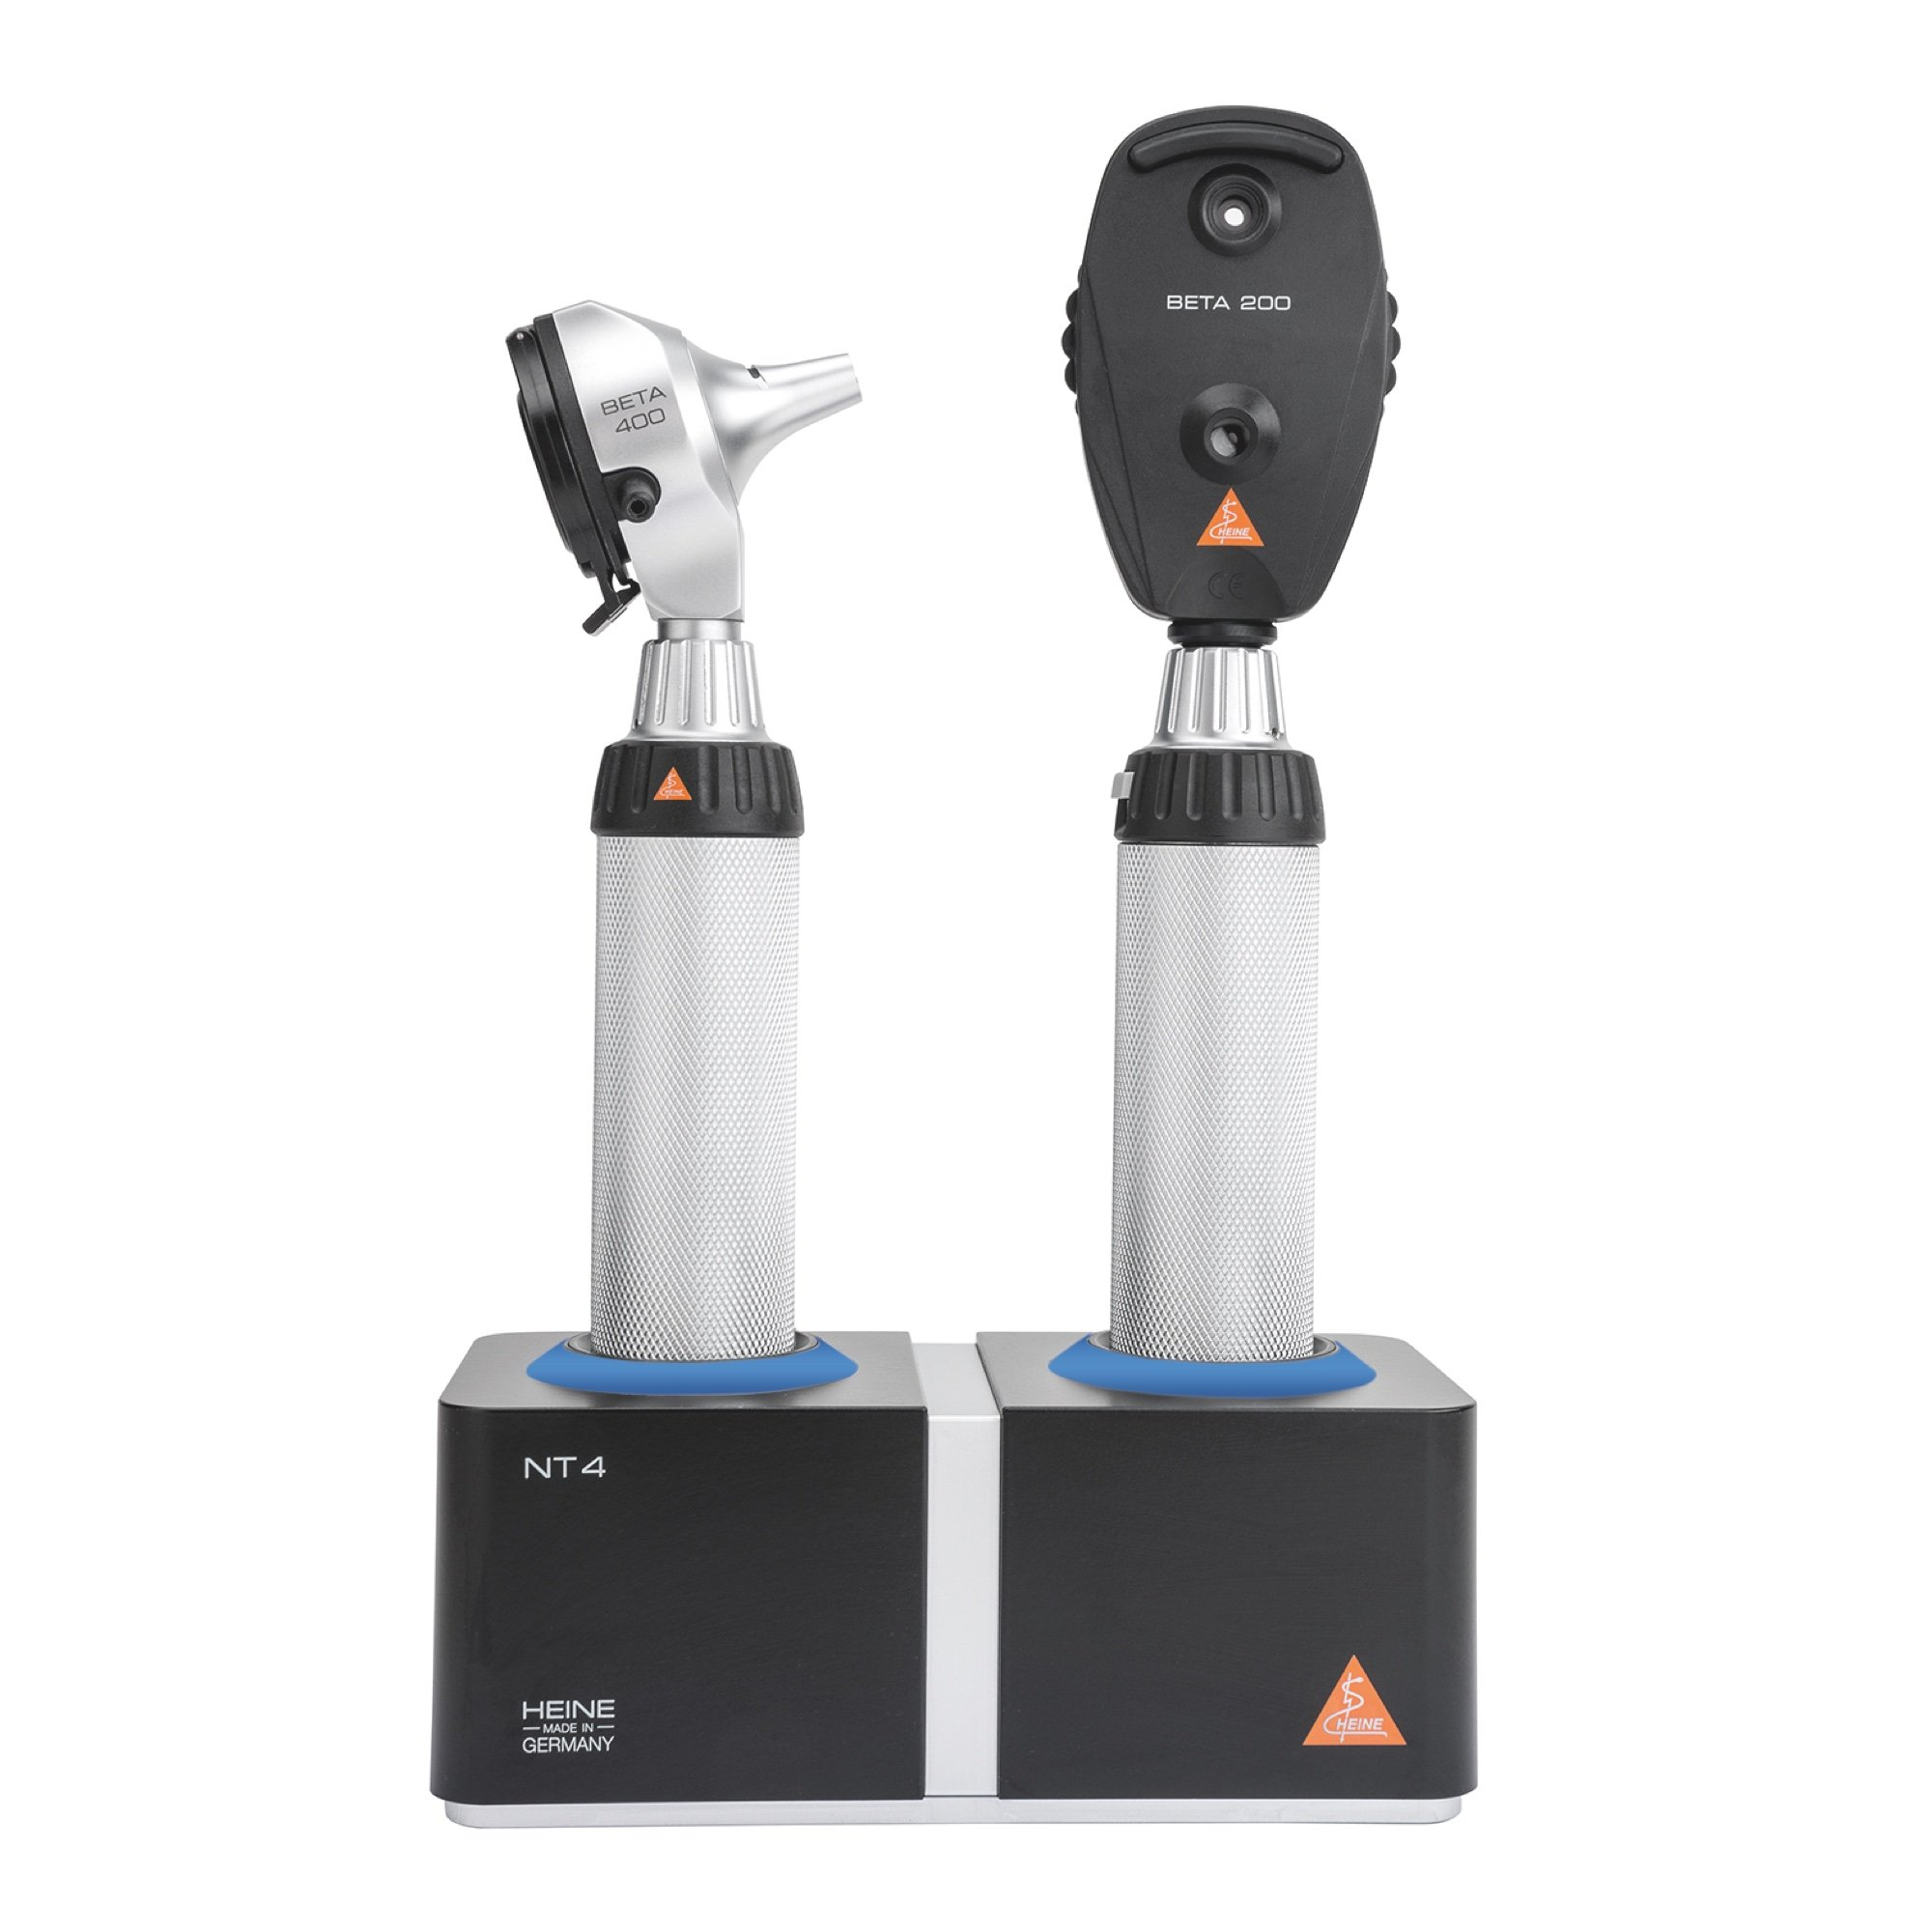 HEINE LED Diagnostic Desktop Kit: BETA 400 LED Otoscope & BETA 200 Ophthalmoscope (with NT4 Table Charger)